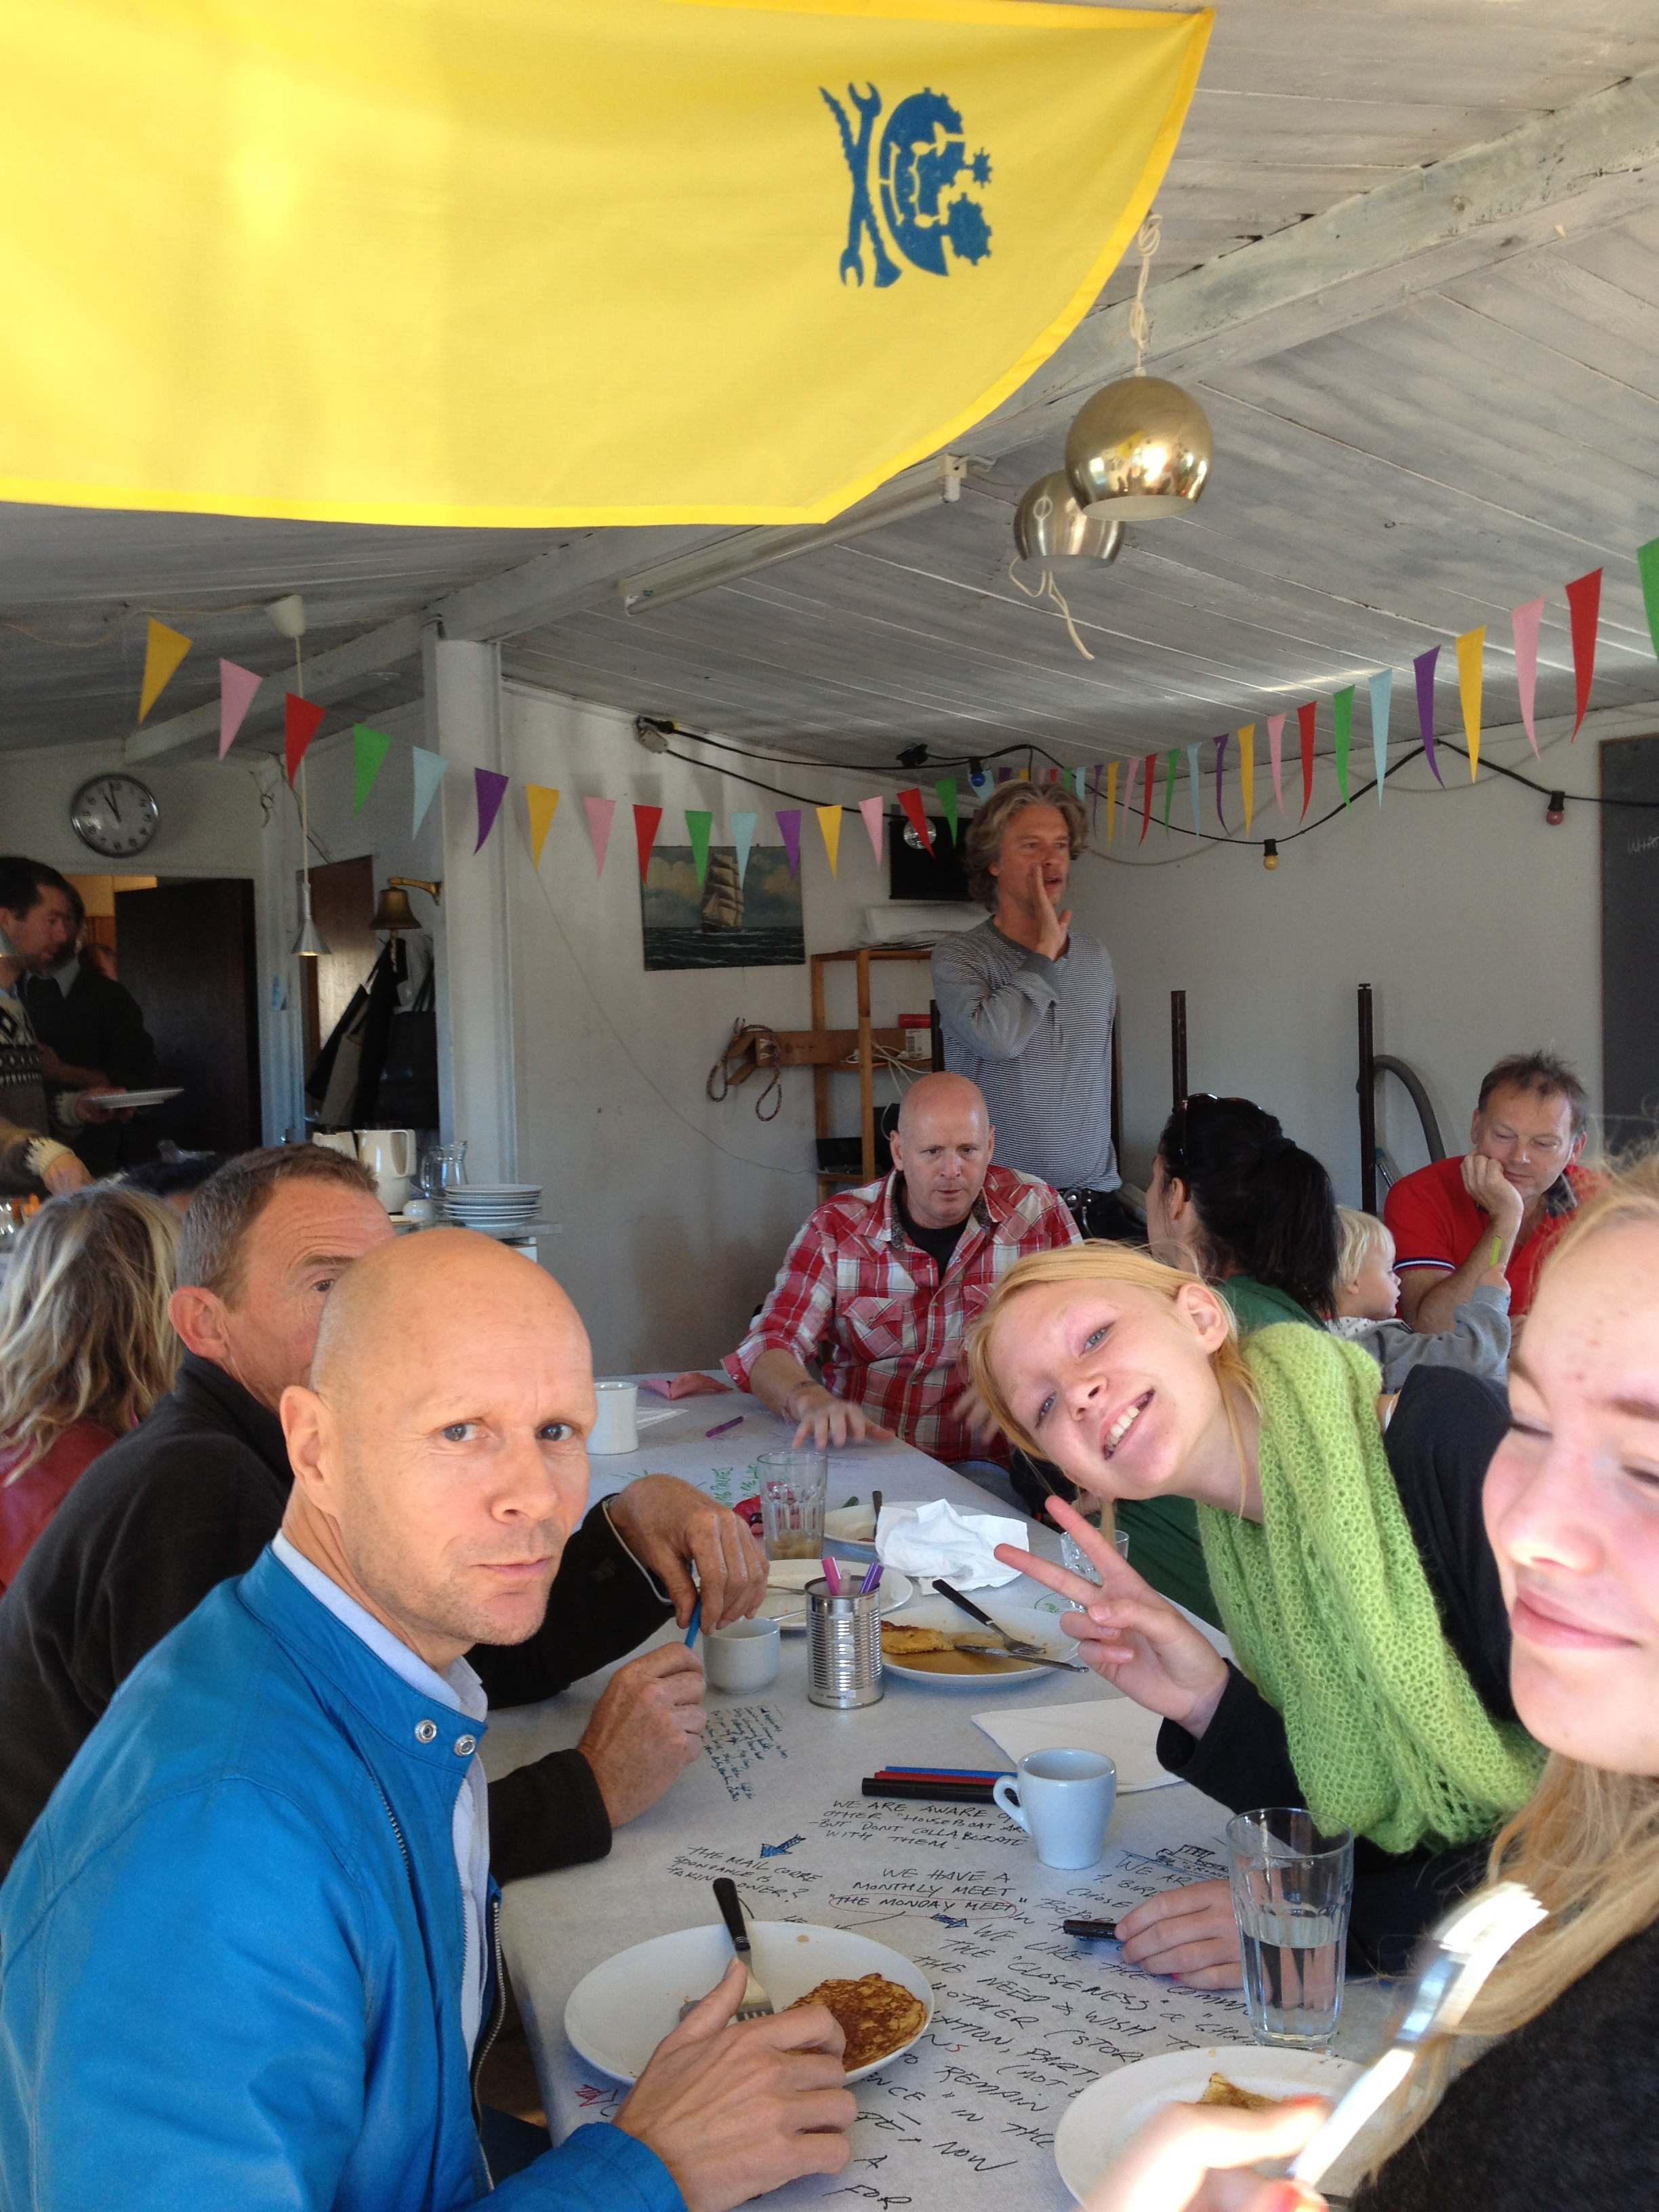 Skibboren pancake dialog, held on the community houseboat in Skibbroen, Copenhagen, Denmark